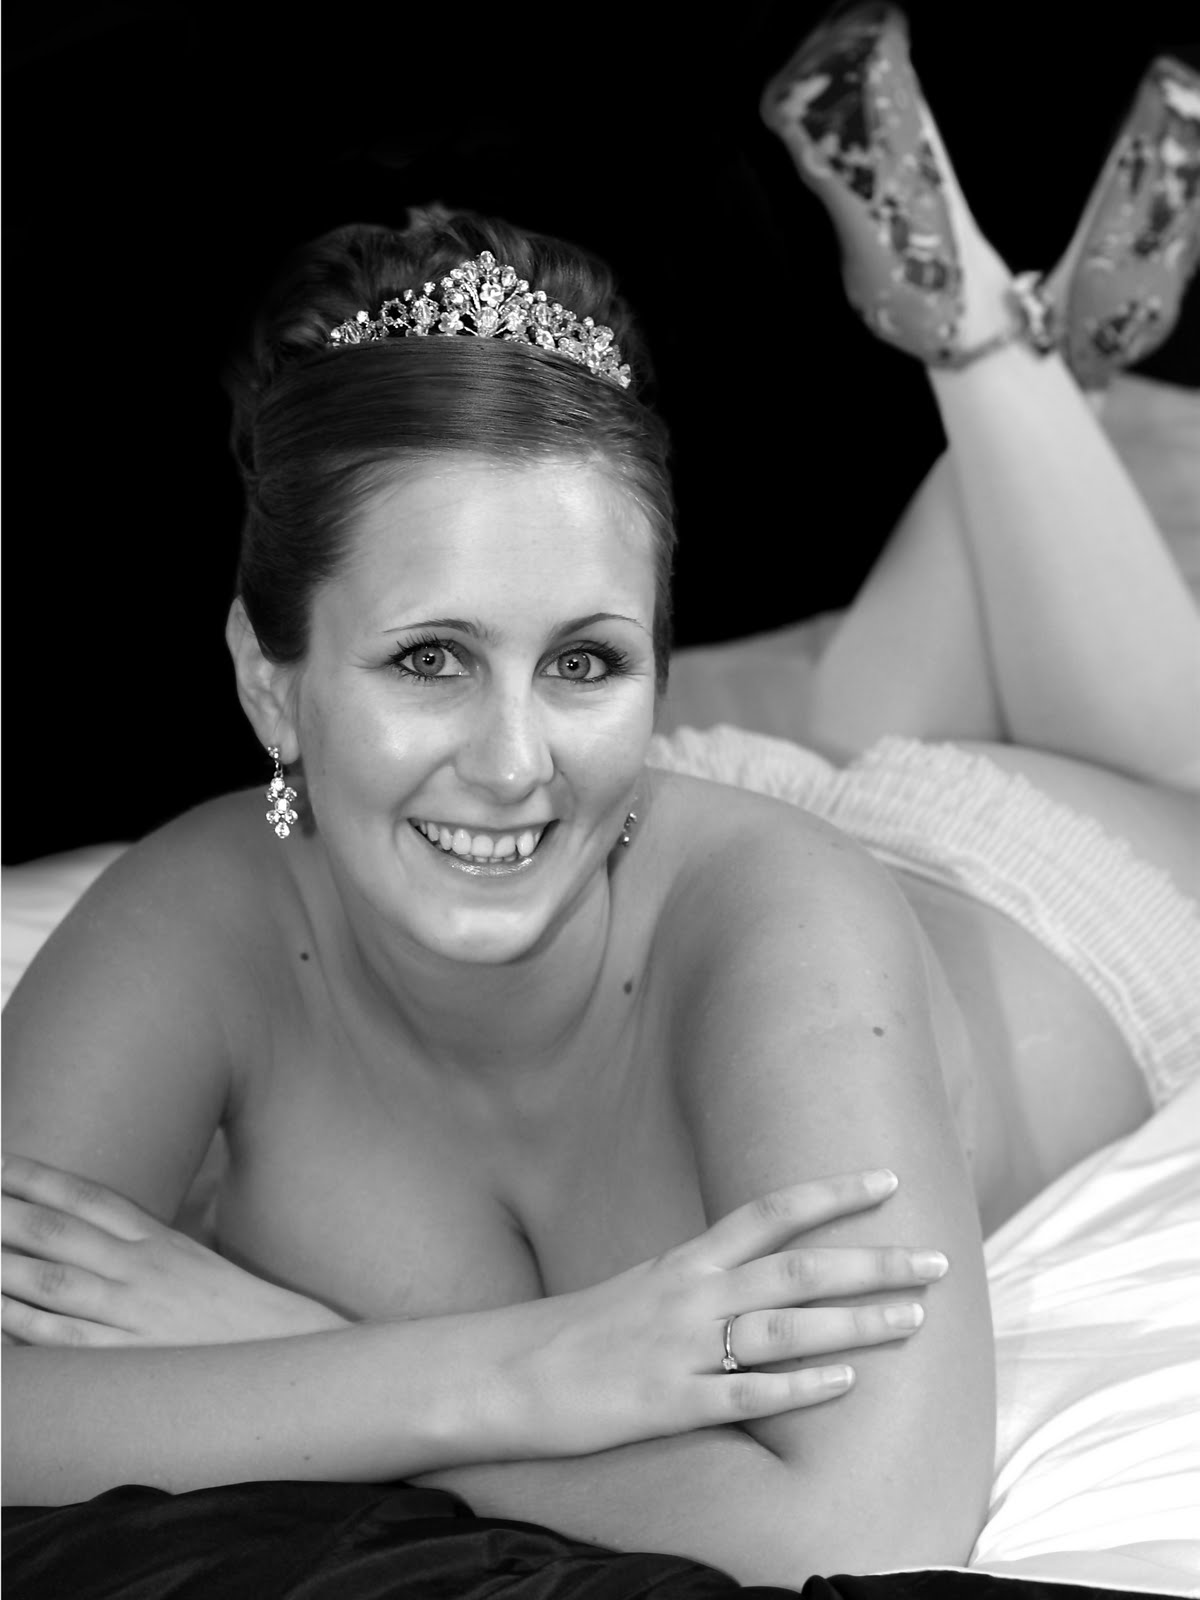 Boudoir Photography or 'How to look Good Naked'